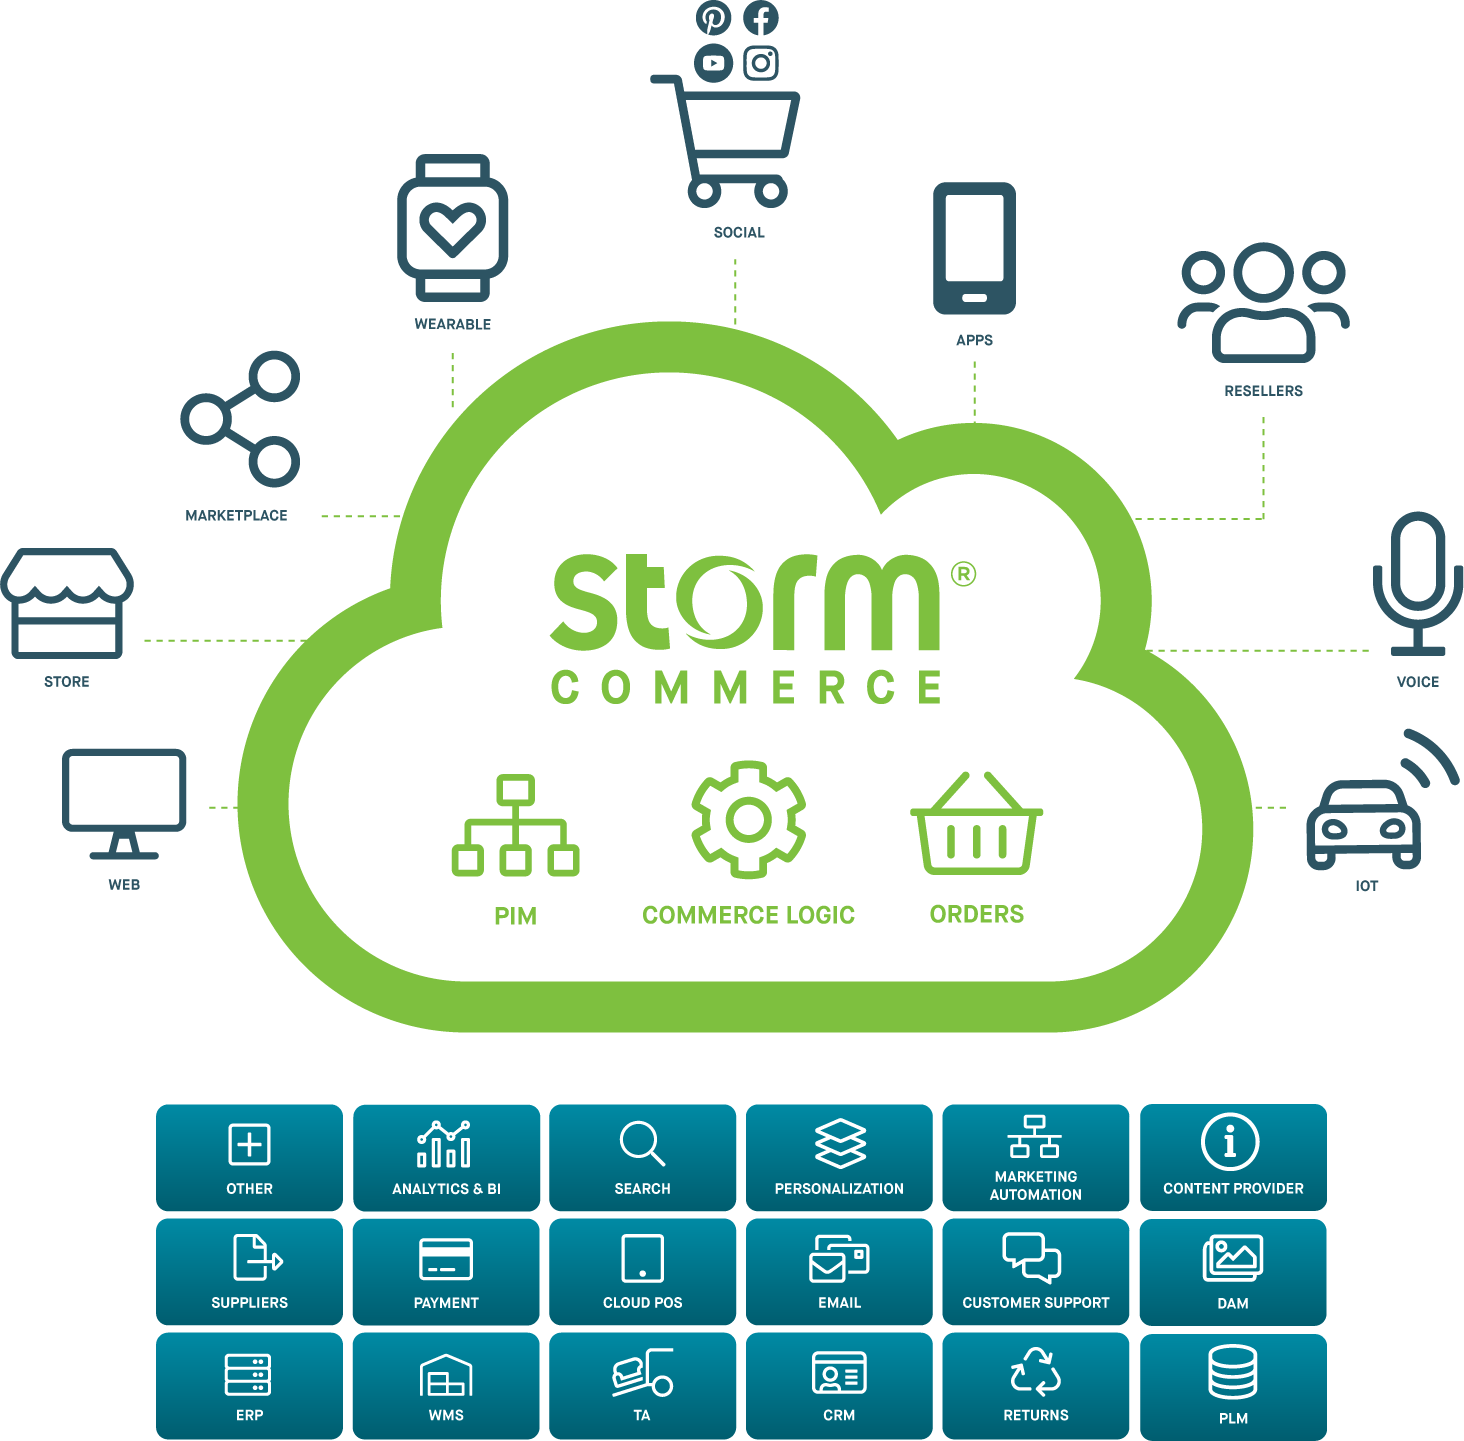 Storm Commerce architecture